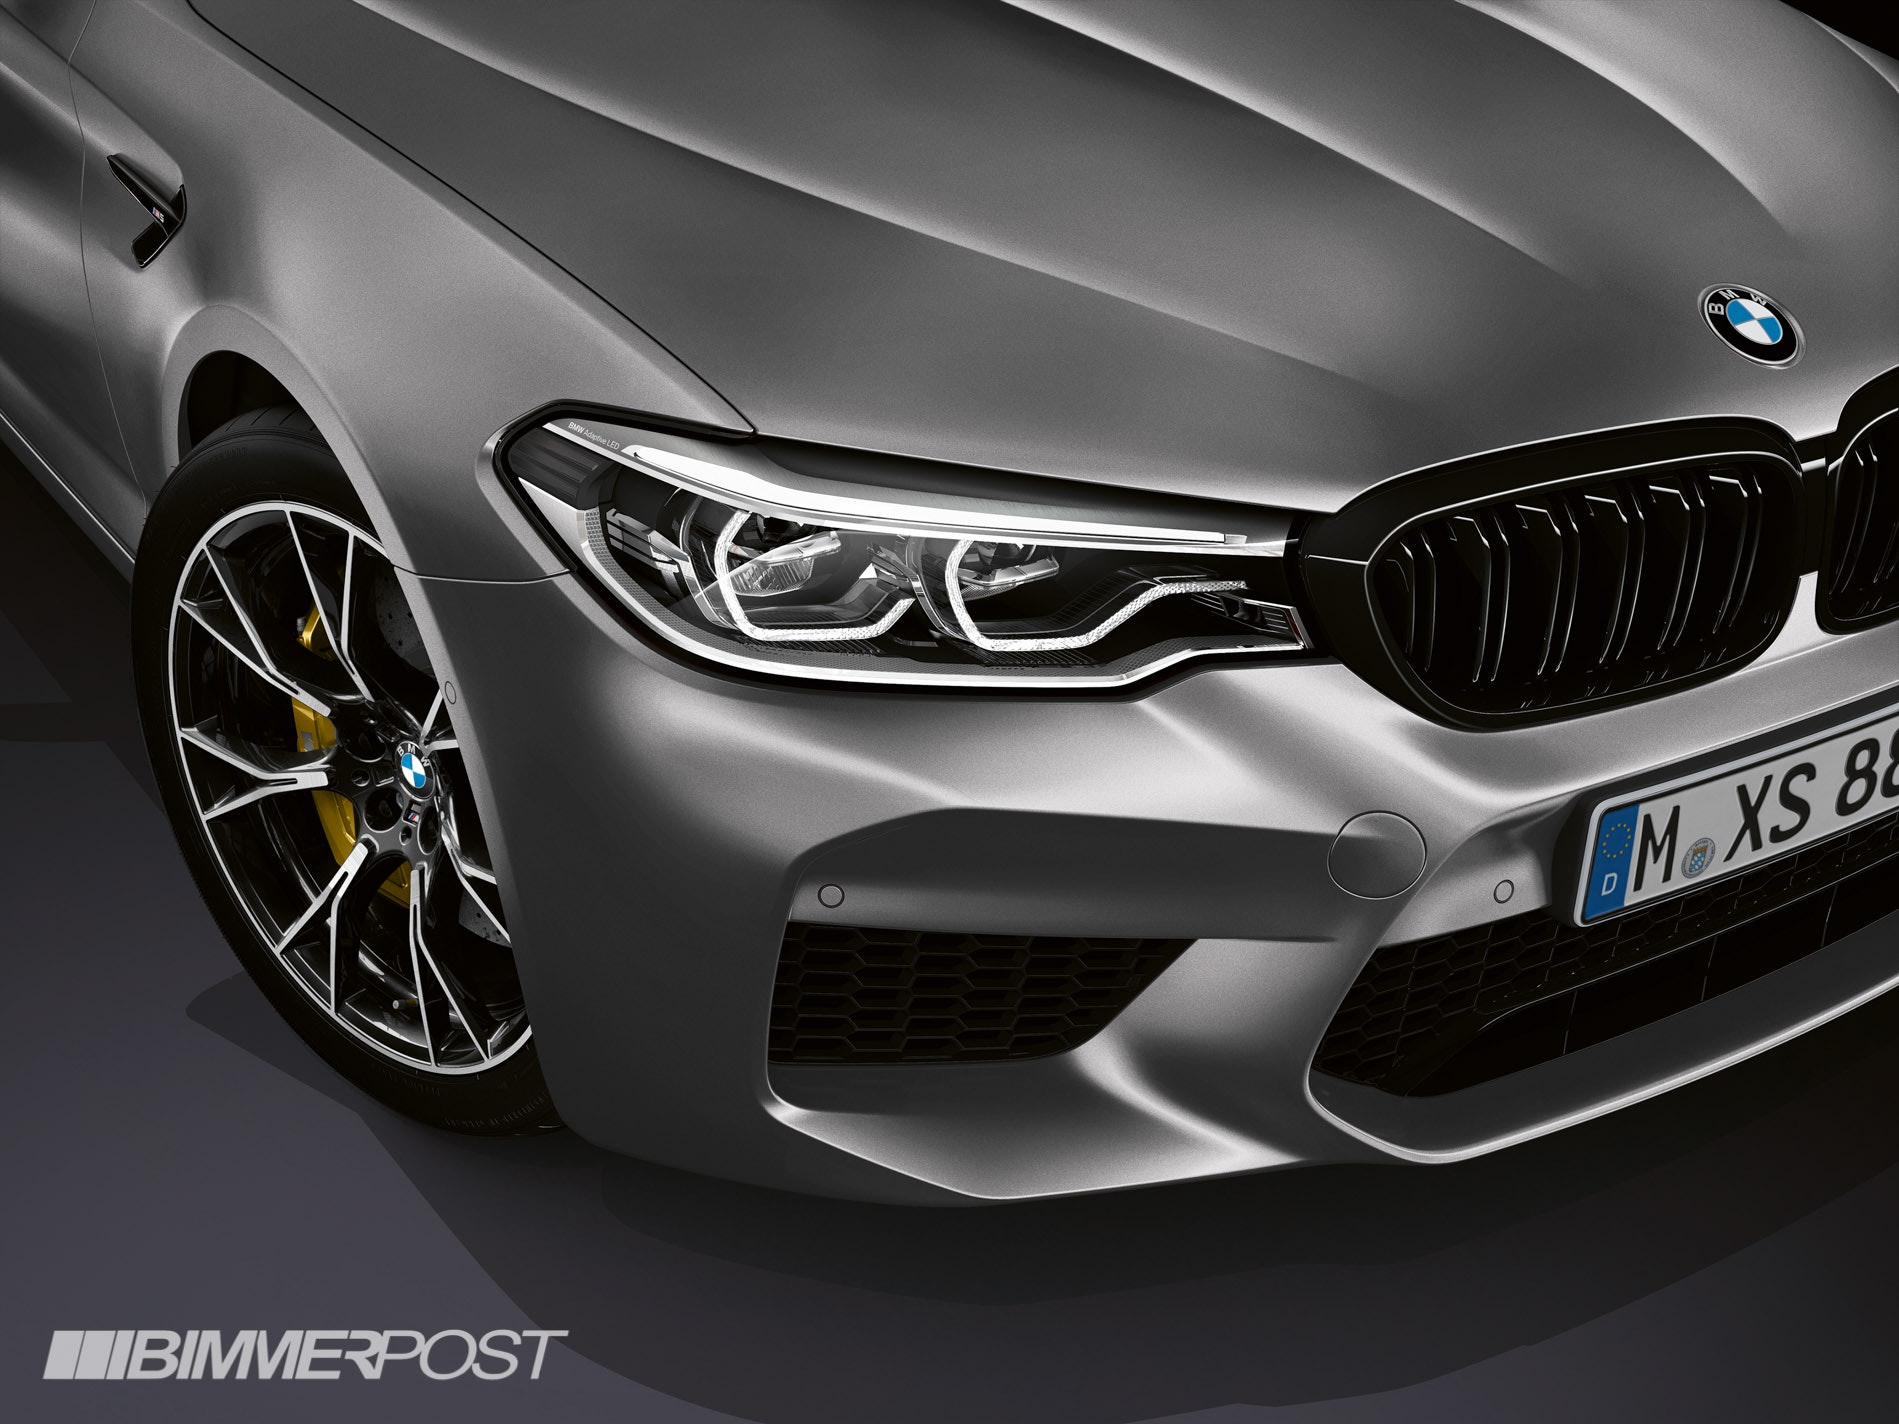 Introducing The 2019 Bmw M5 Competition Pricing Starts At 110 995 M5post Bmw M5 Forum F90